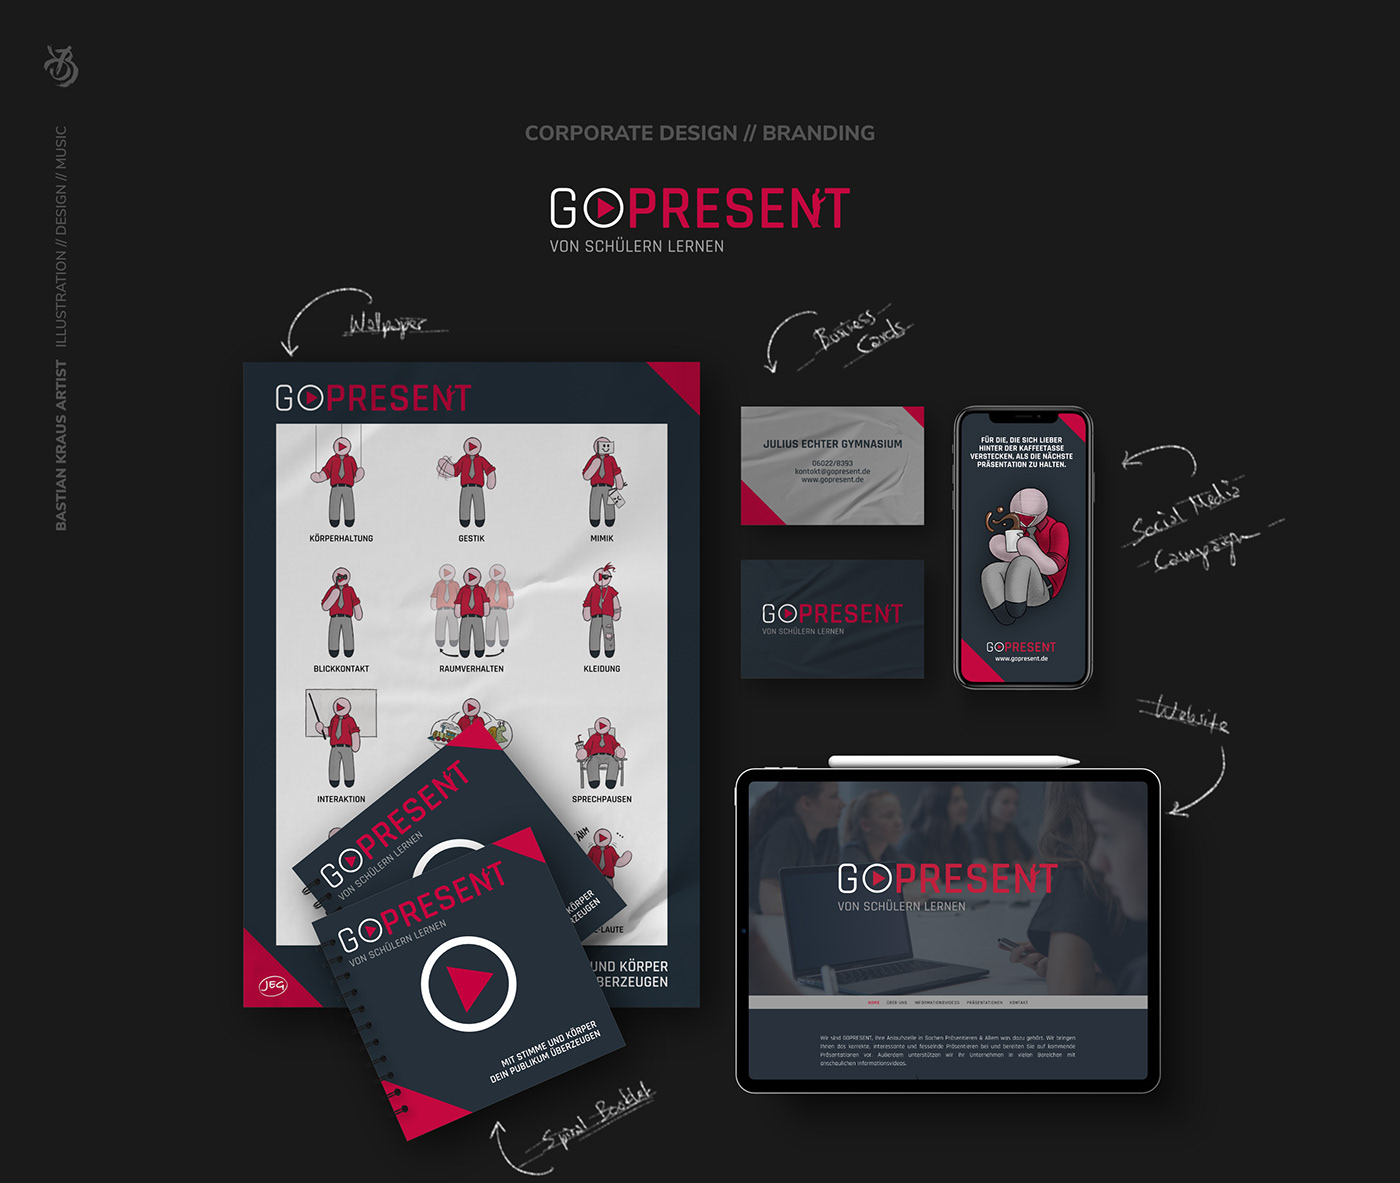 GO PRESENT // Overview